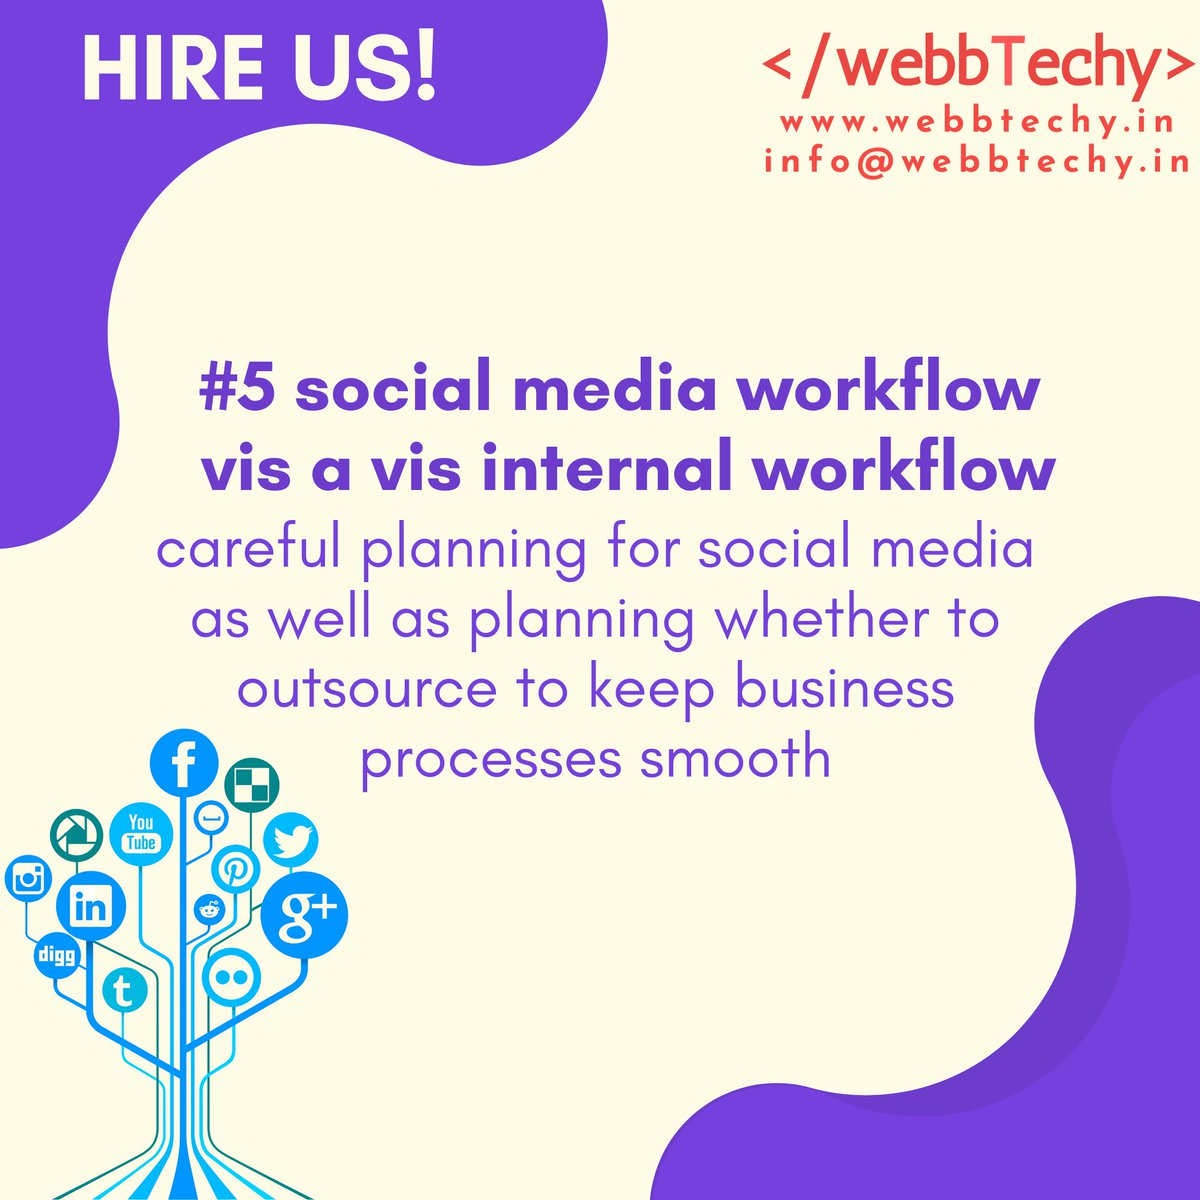 Replying to @TechyWebb: choosing the right #SocialMedia channels for your #business   #5 social media workflow vis a vis internal workflow  #Trending #Trends #trendingtopic #TrendingNow #mondaythoughts #MondayMotivation #Facebook #linkedIn #Instagram #twitter #Yo…